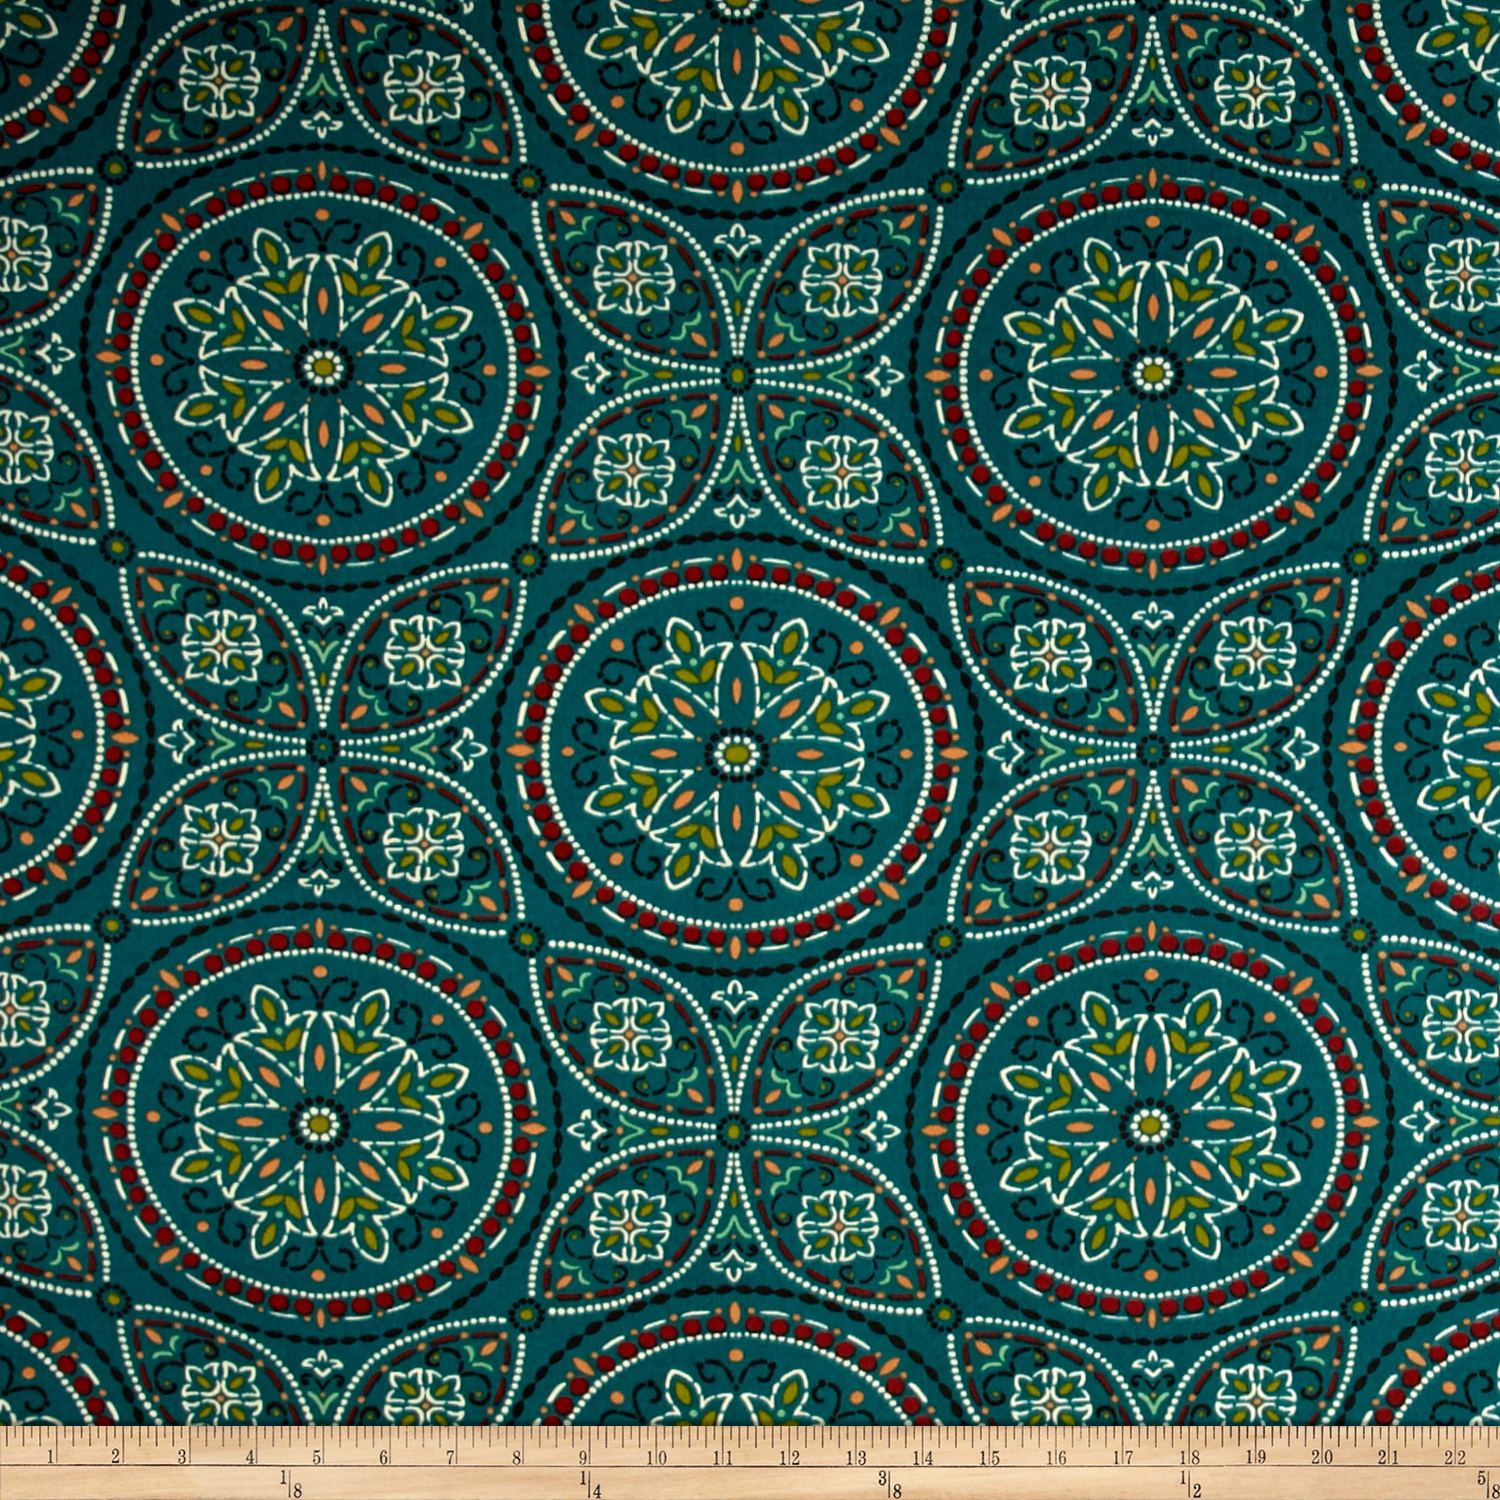 Richloom Solarium Outdoor Alden Teal Fabric by TNT in USA